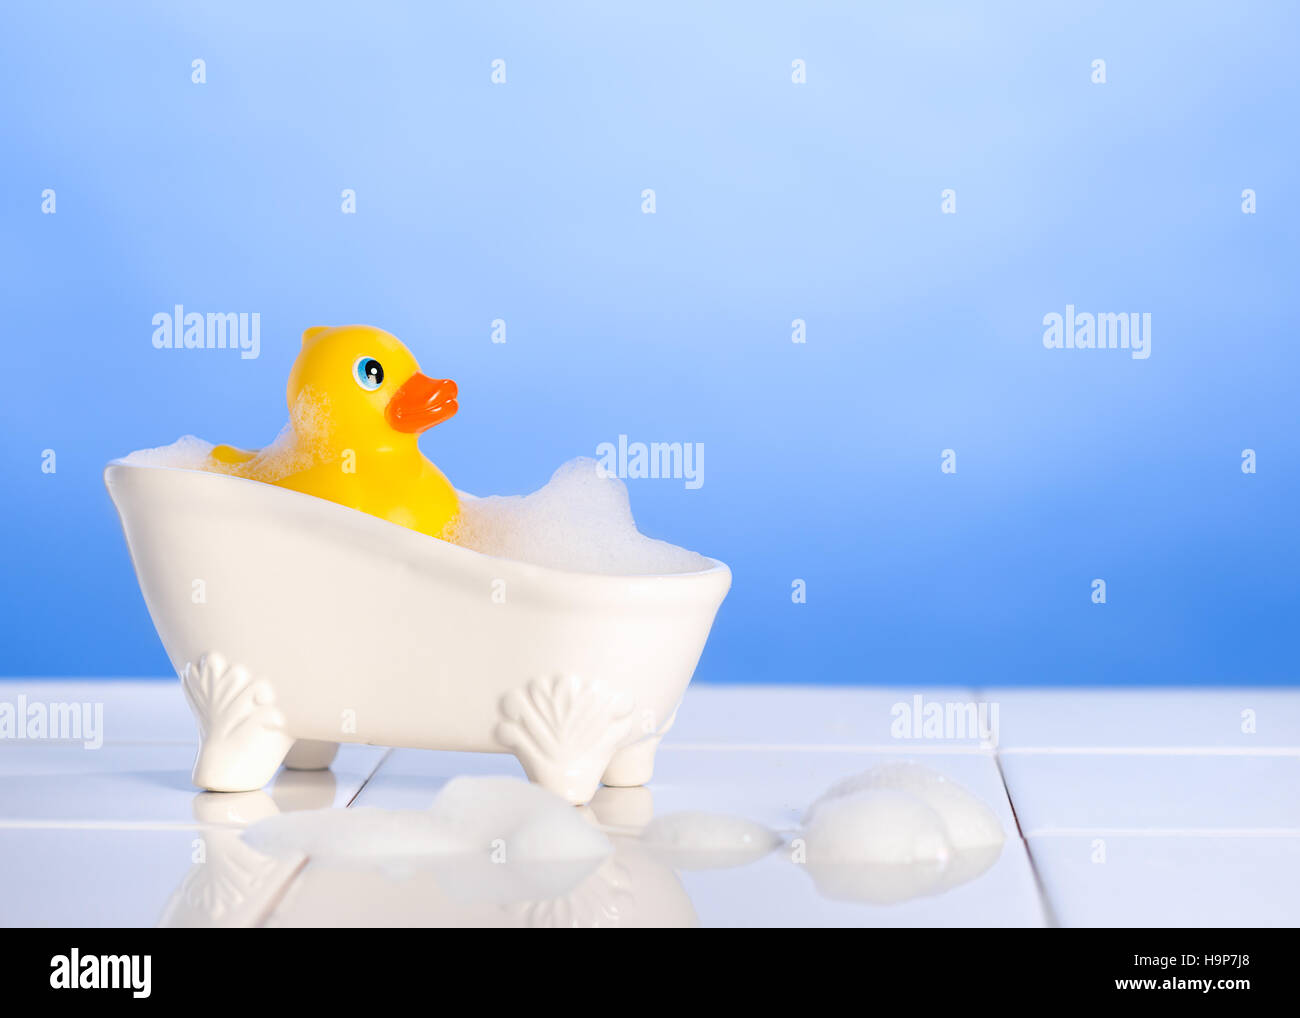 Rubber duck in the bath with soap suds on a blue background - Stock Image